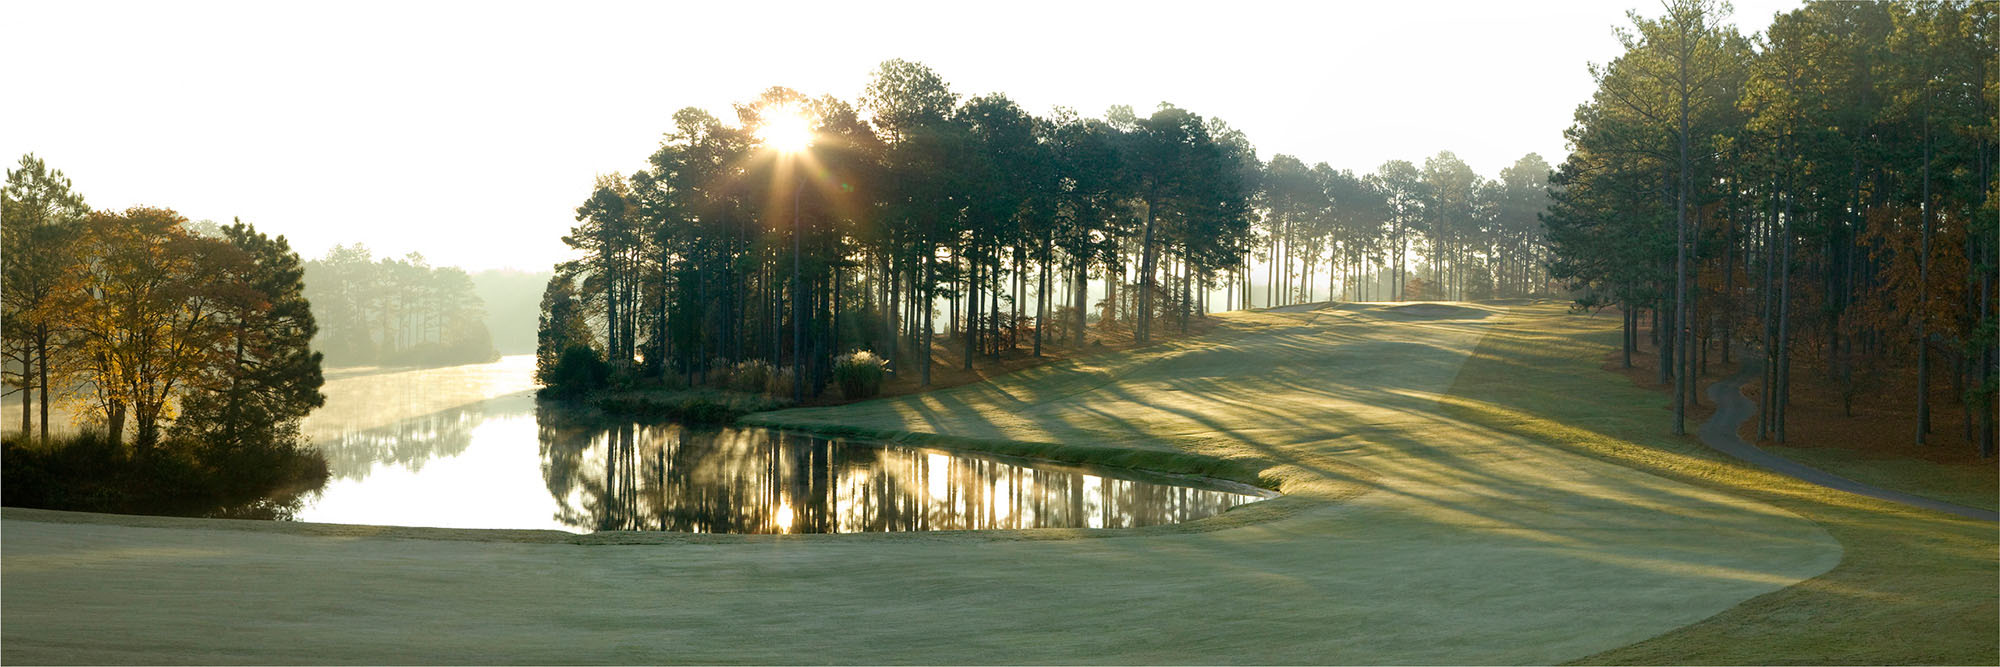 Country Club of North Carolina - Dogwood